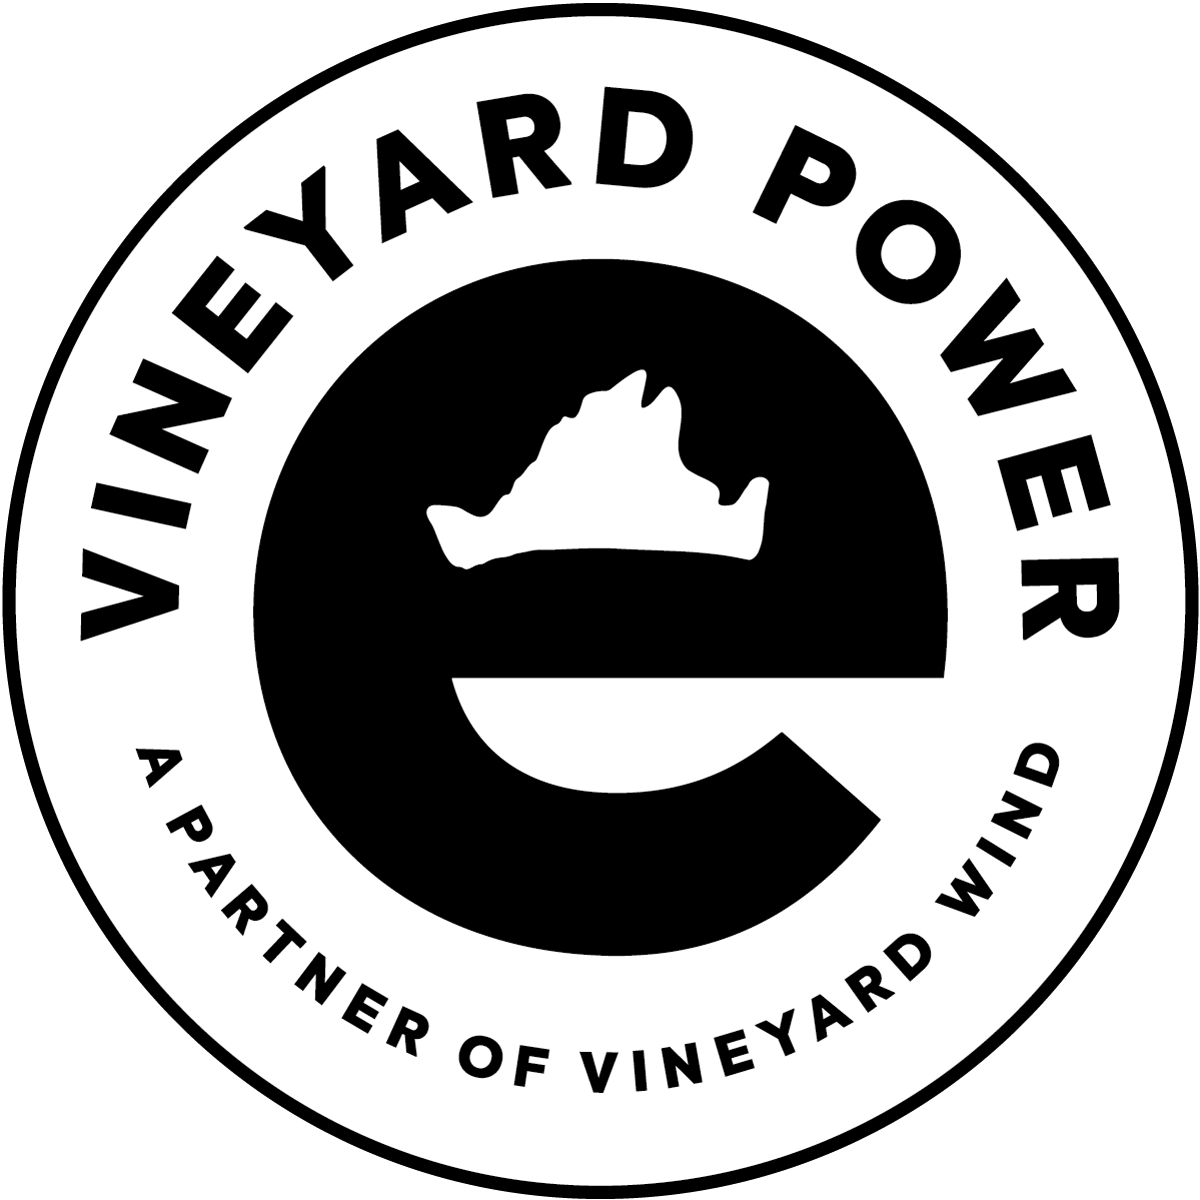 Vineyard Power